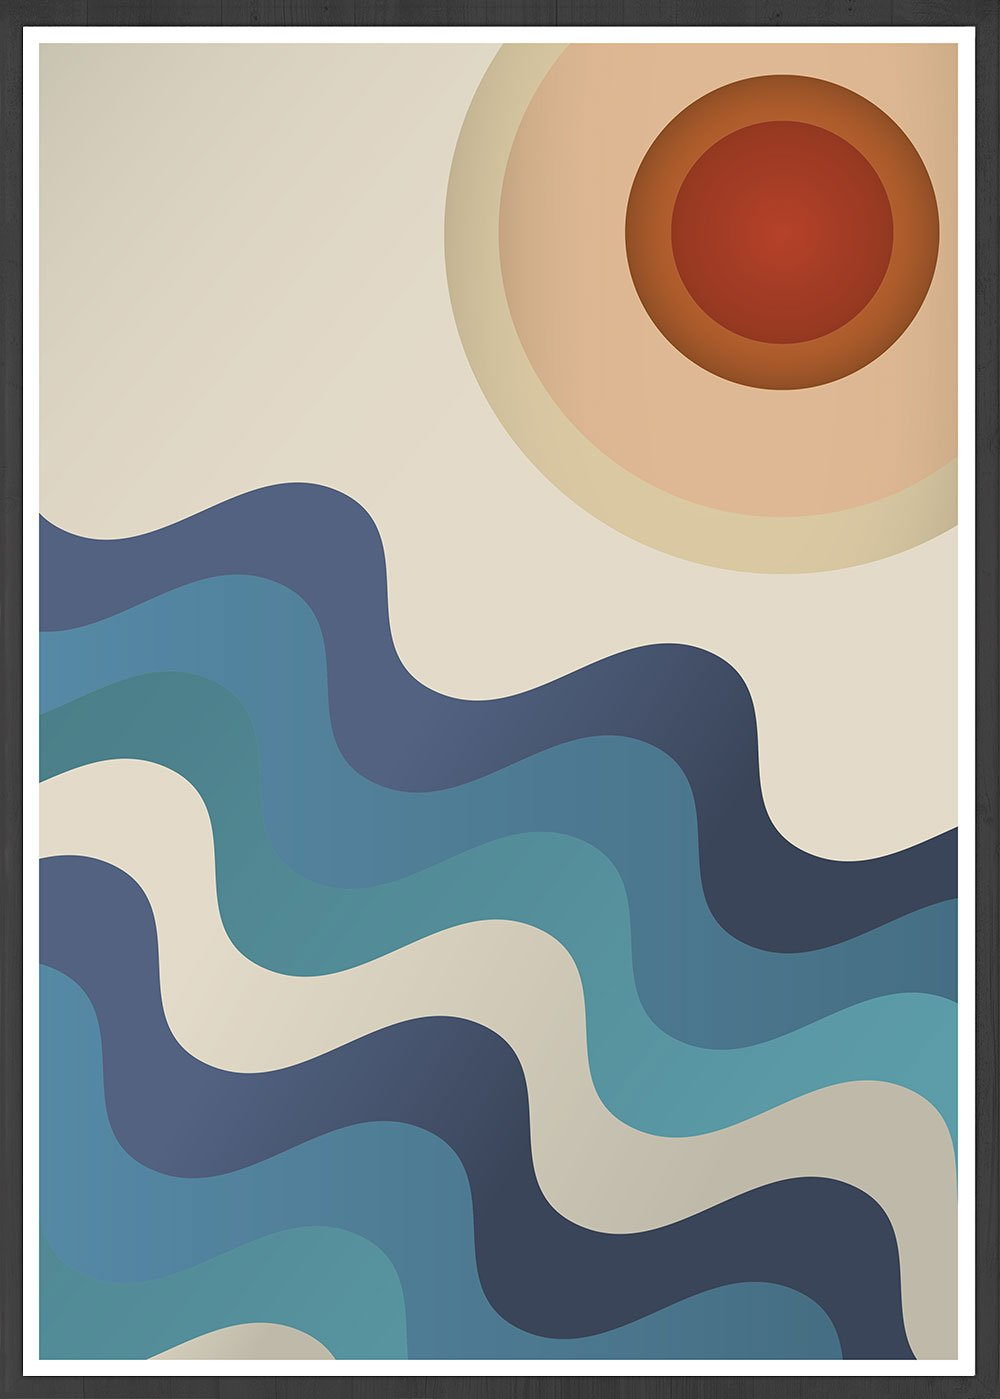 Sunshine Ocean Retro Art Print in a frame